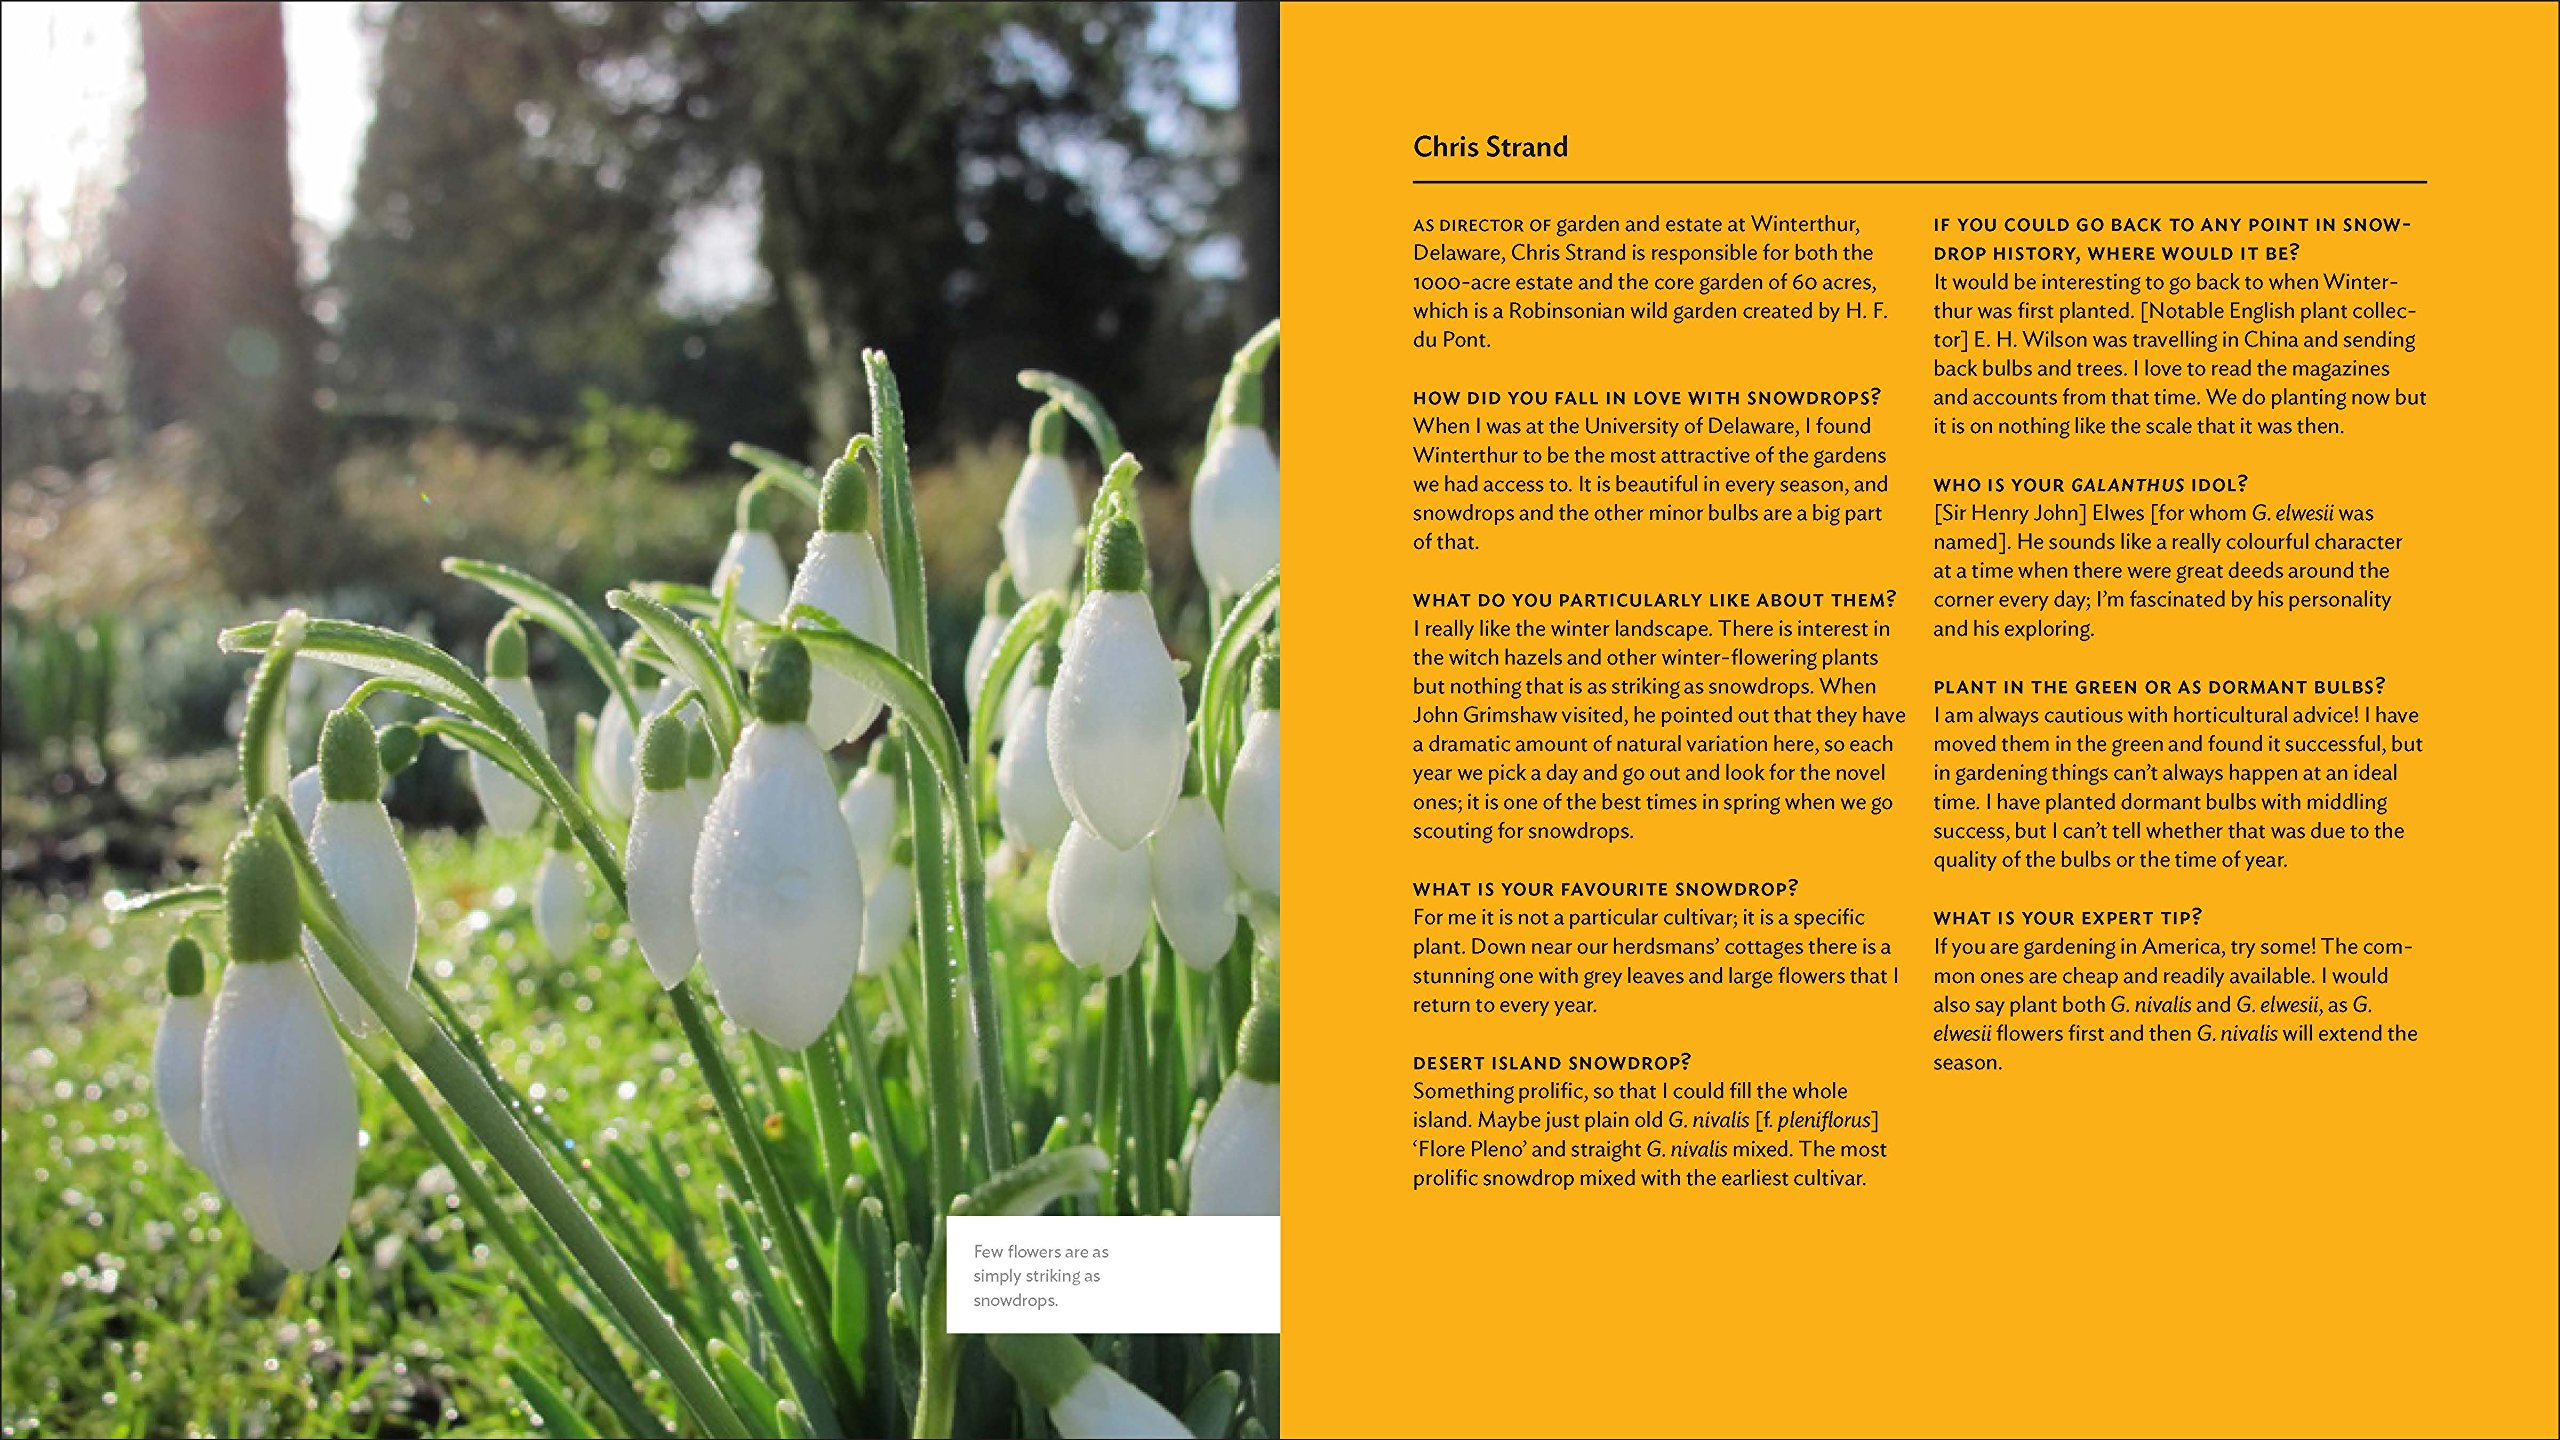 The Plant Lovers Guide To Snowdrops The Plant Lovers Guides